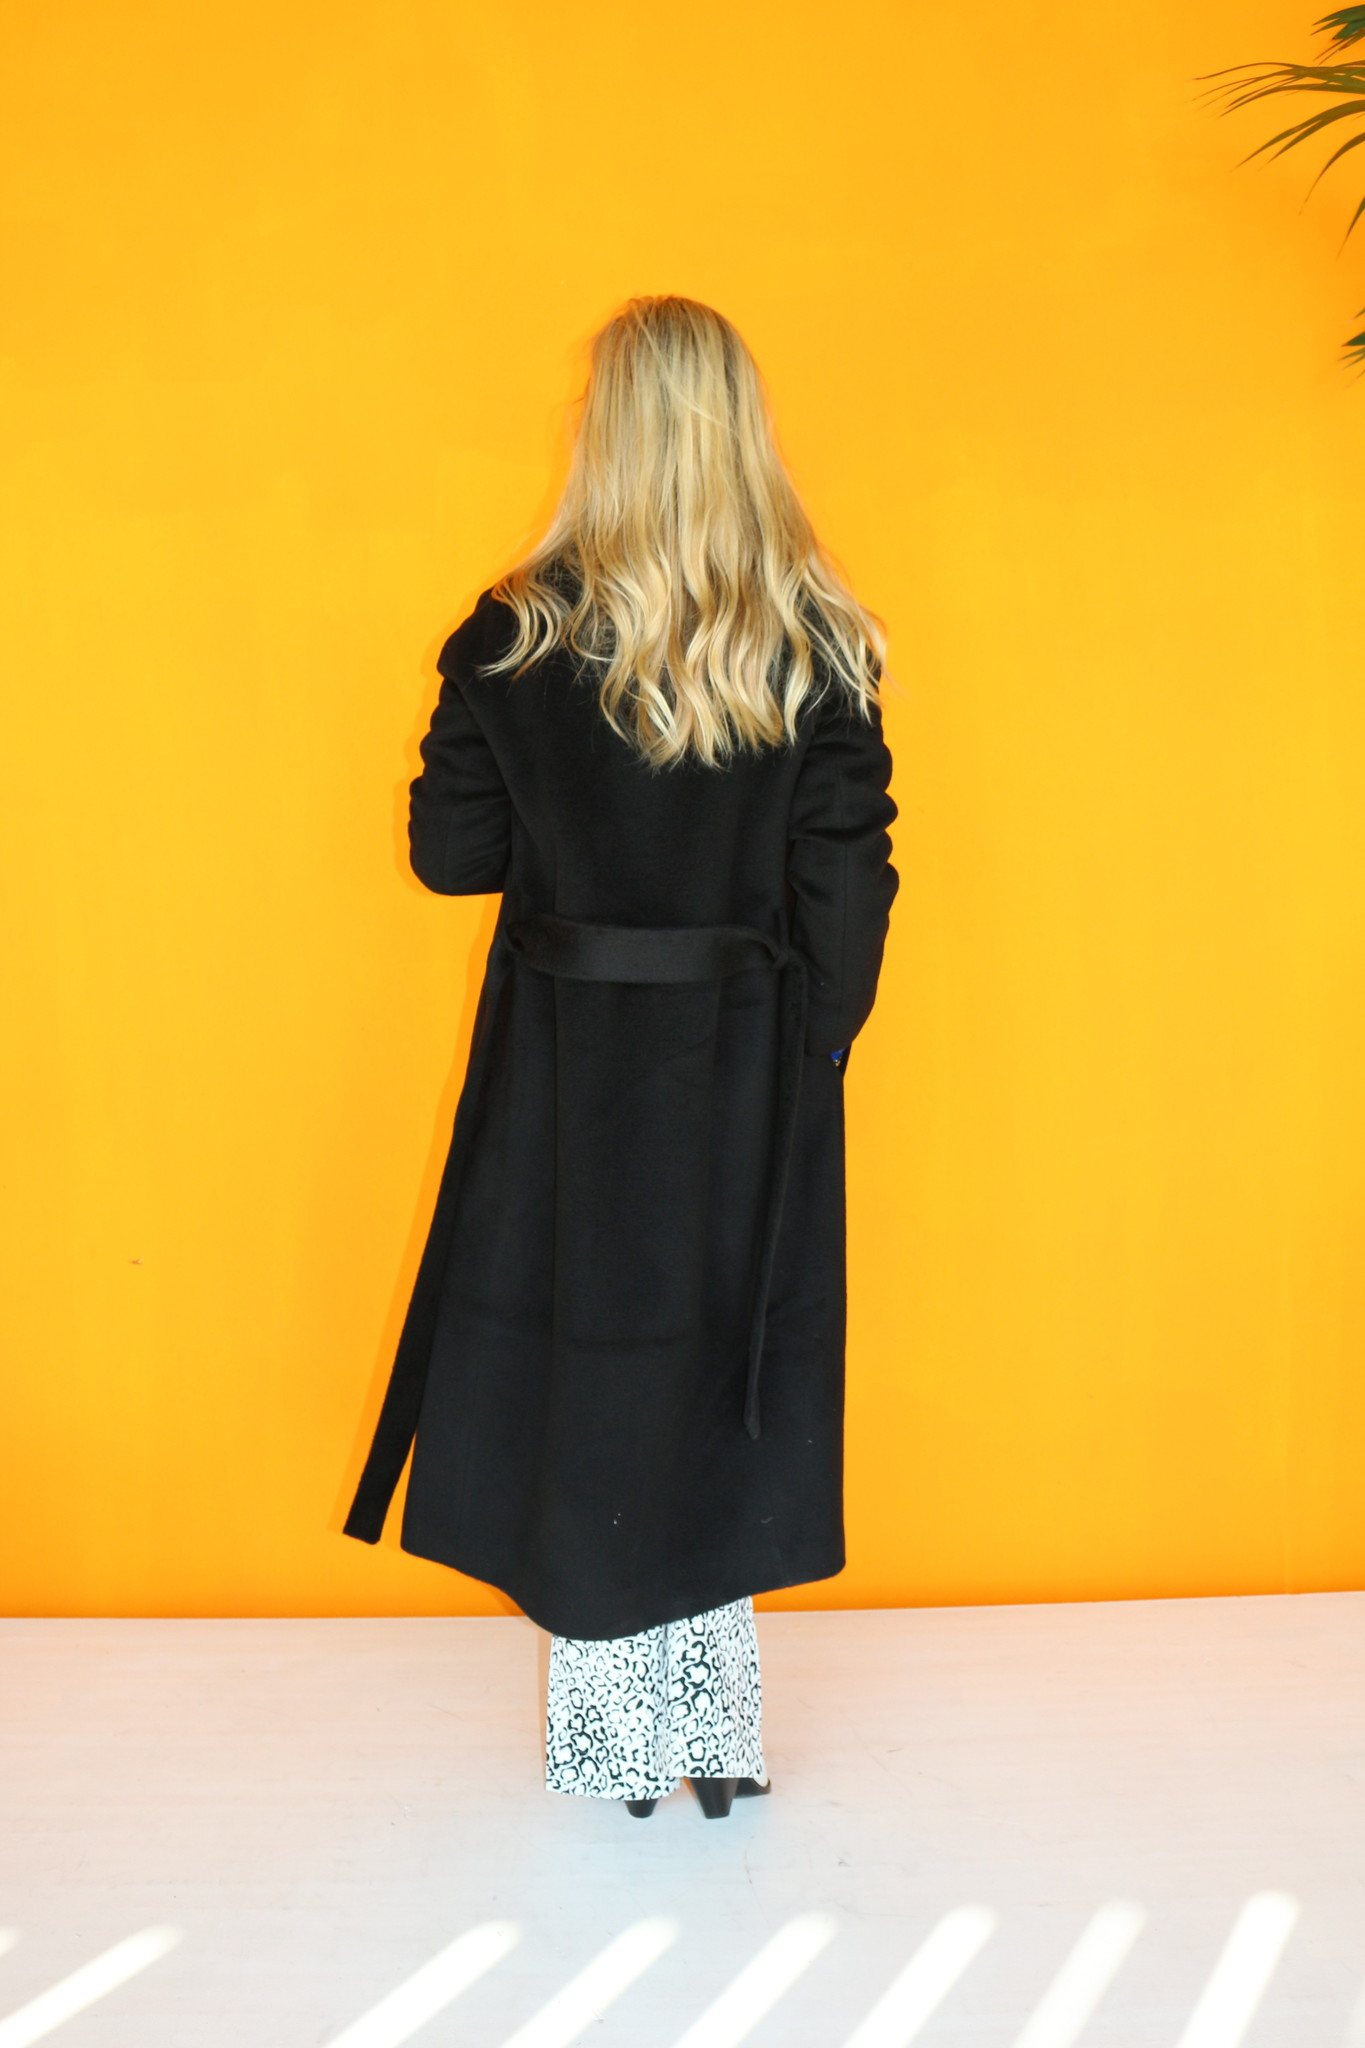 ALIX THE LABEL COAT FROM ALIX THE LABEL